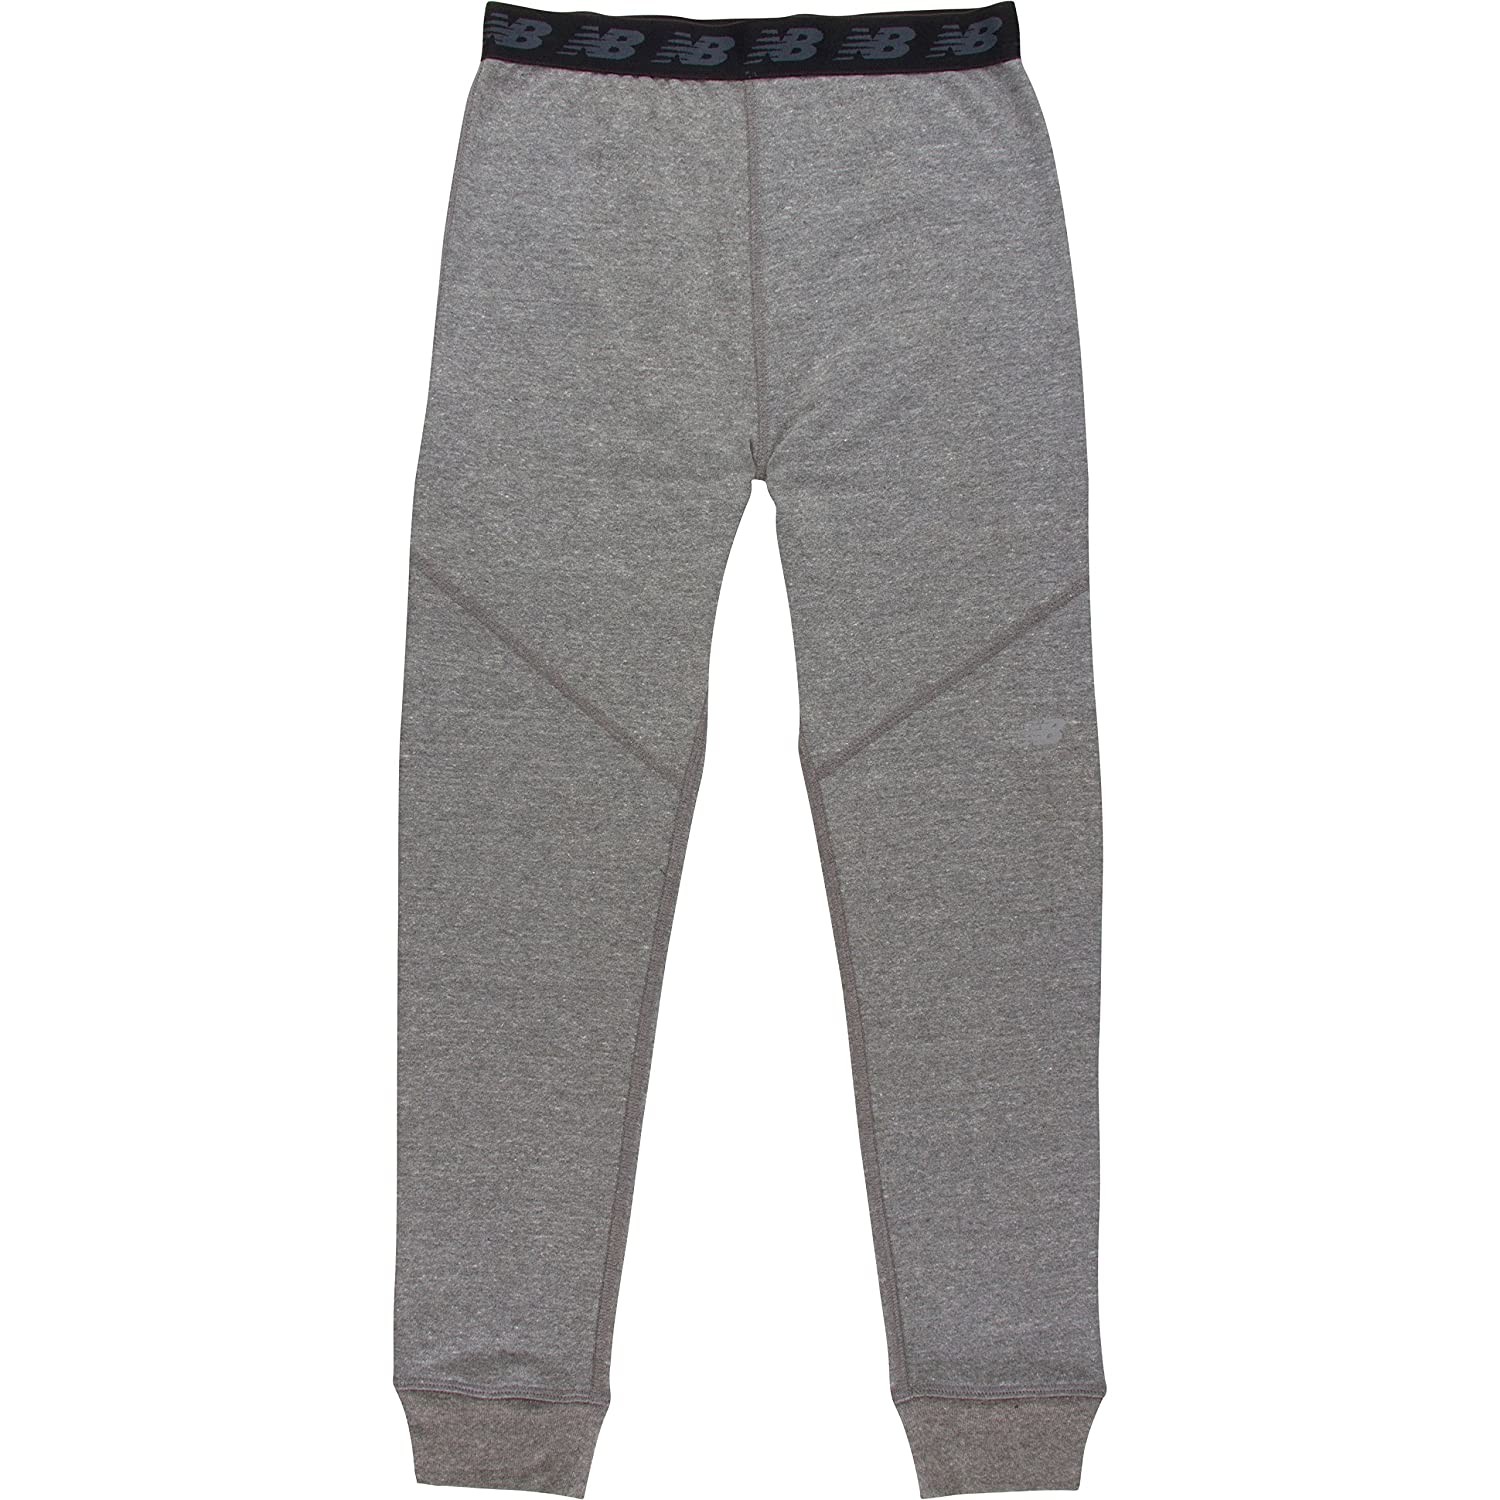 New Balance Girls Jogger Pant